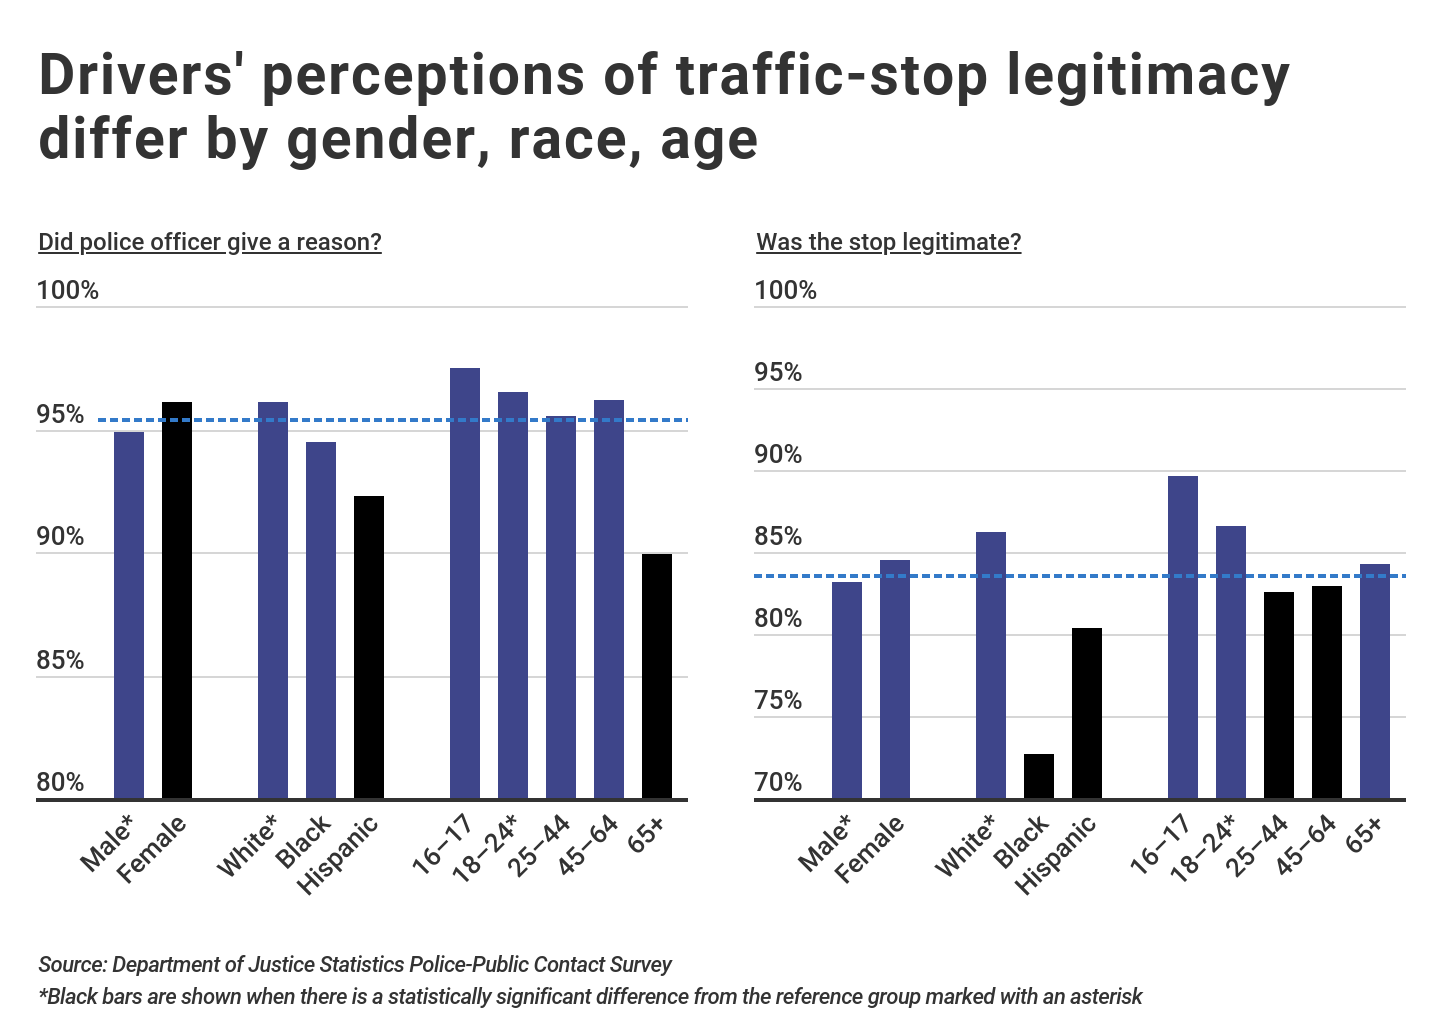 Drivers' understanding of traffic stop based on race, gender, and age- bar graphs